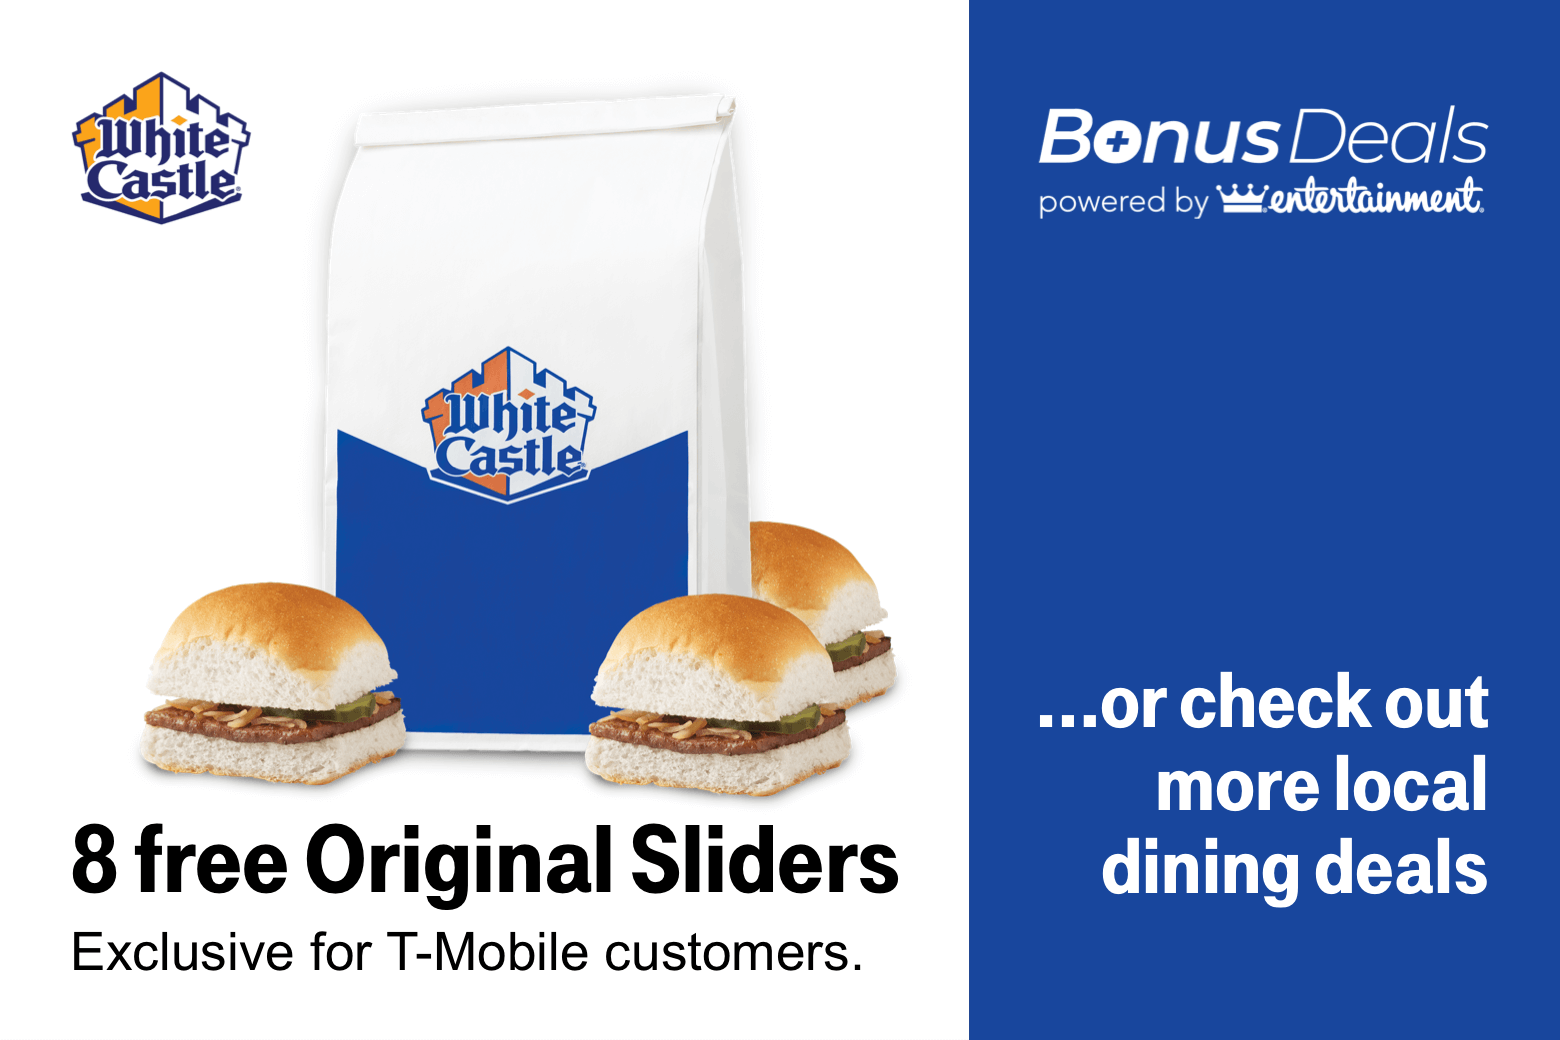 White Castle. Bonus Deals powered by Entertainment. 8 free Original Sliders. Or check out more local dining deals. Exclusive for T-Mobile customers.